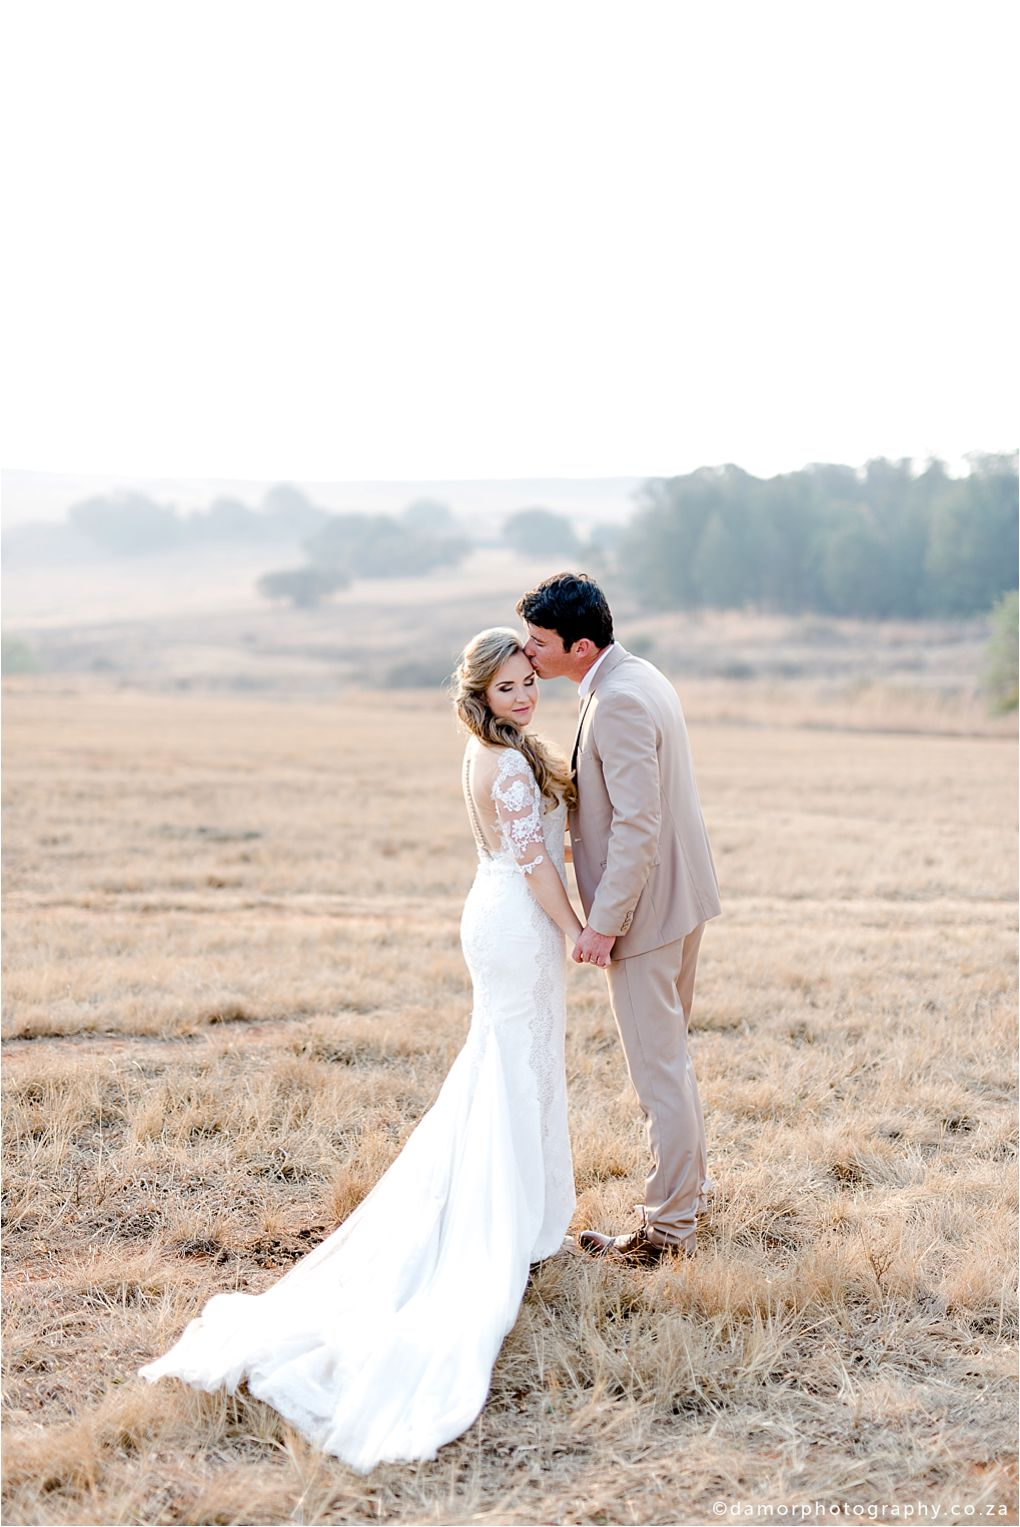 D'Amor Wedding Photography Brian and Marianne Silver Sixpence Dullstroom 67